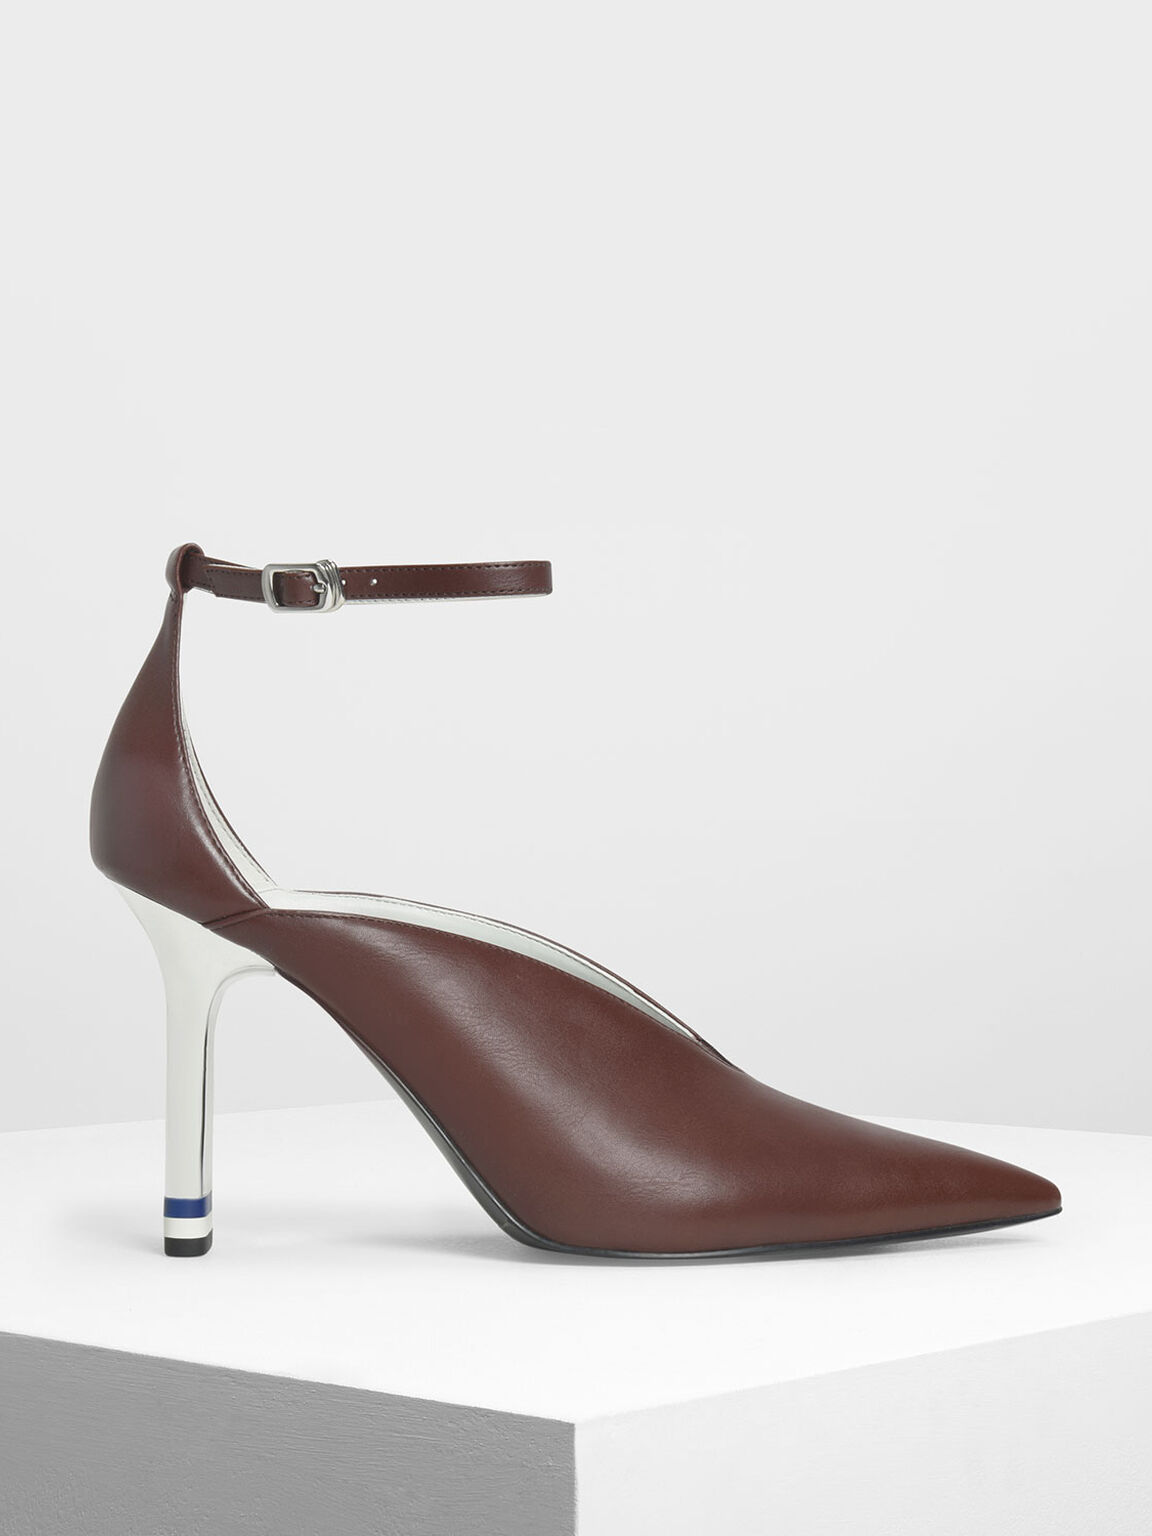 V-Cut Pointed Toe Pumps, Dark Brown, hi-res